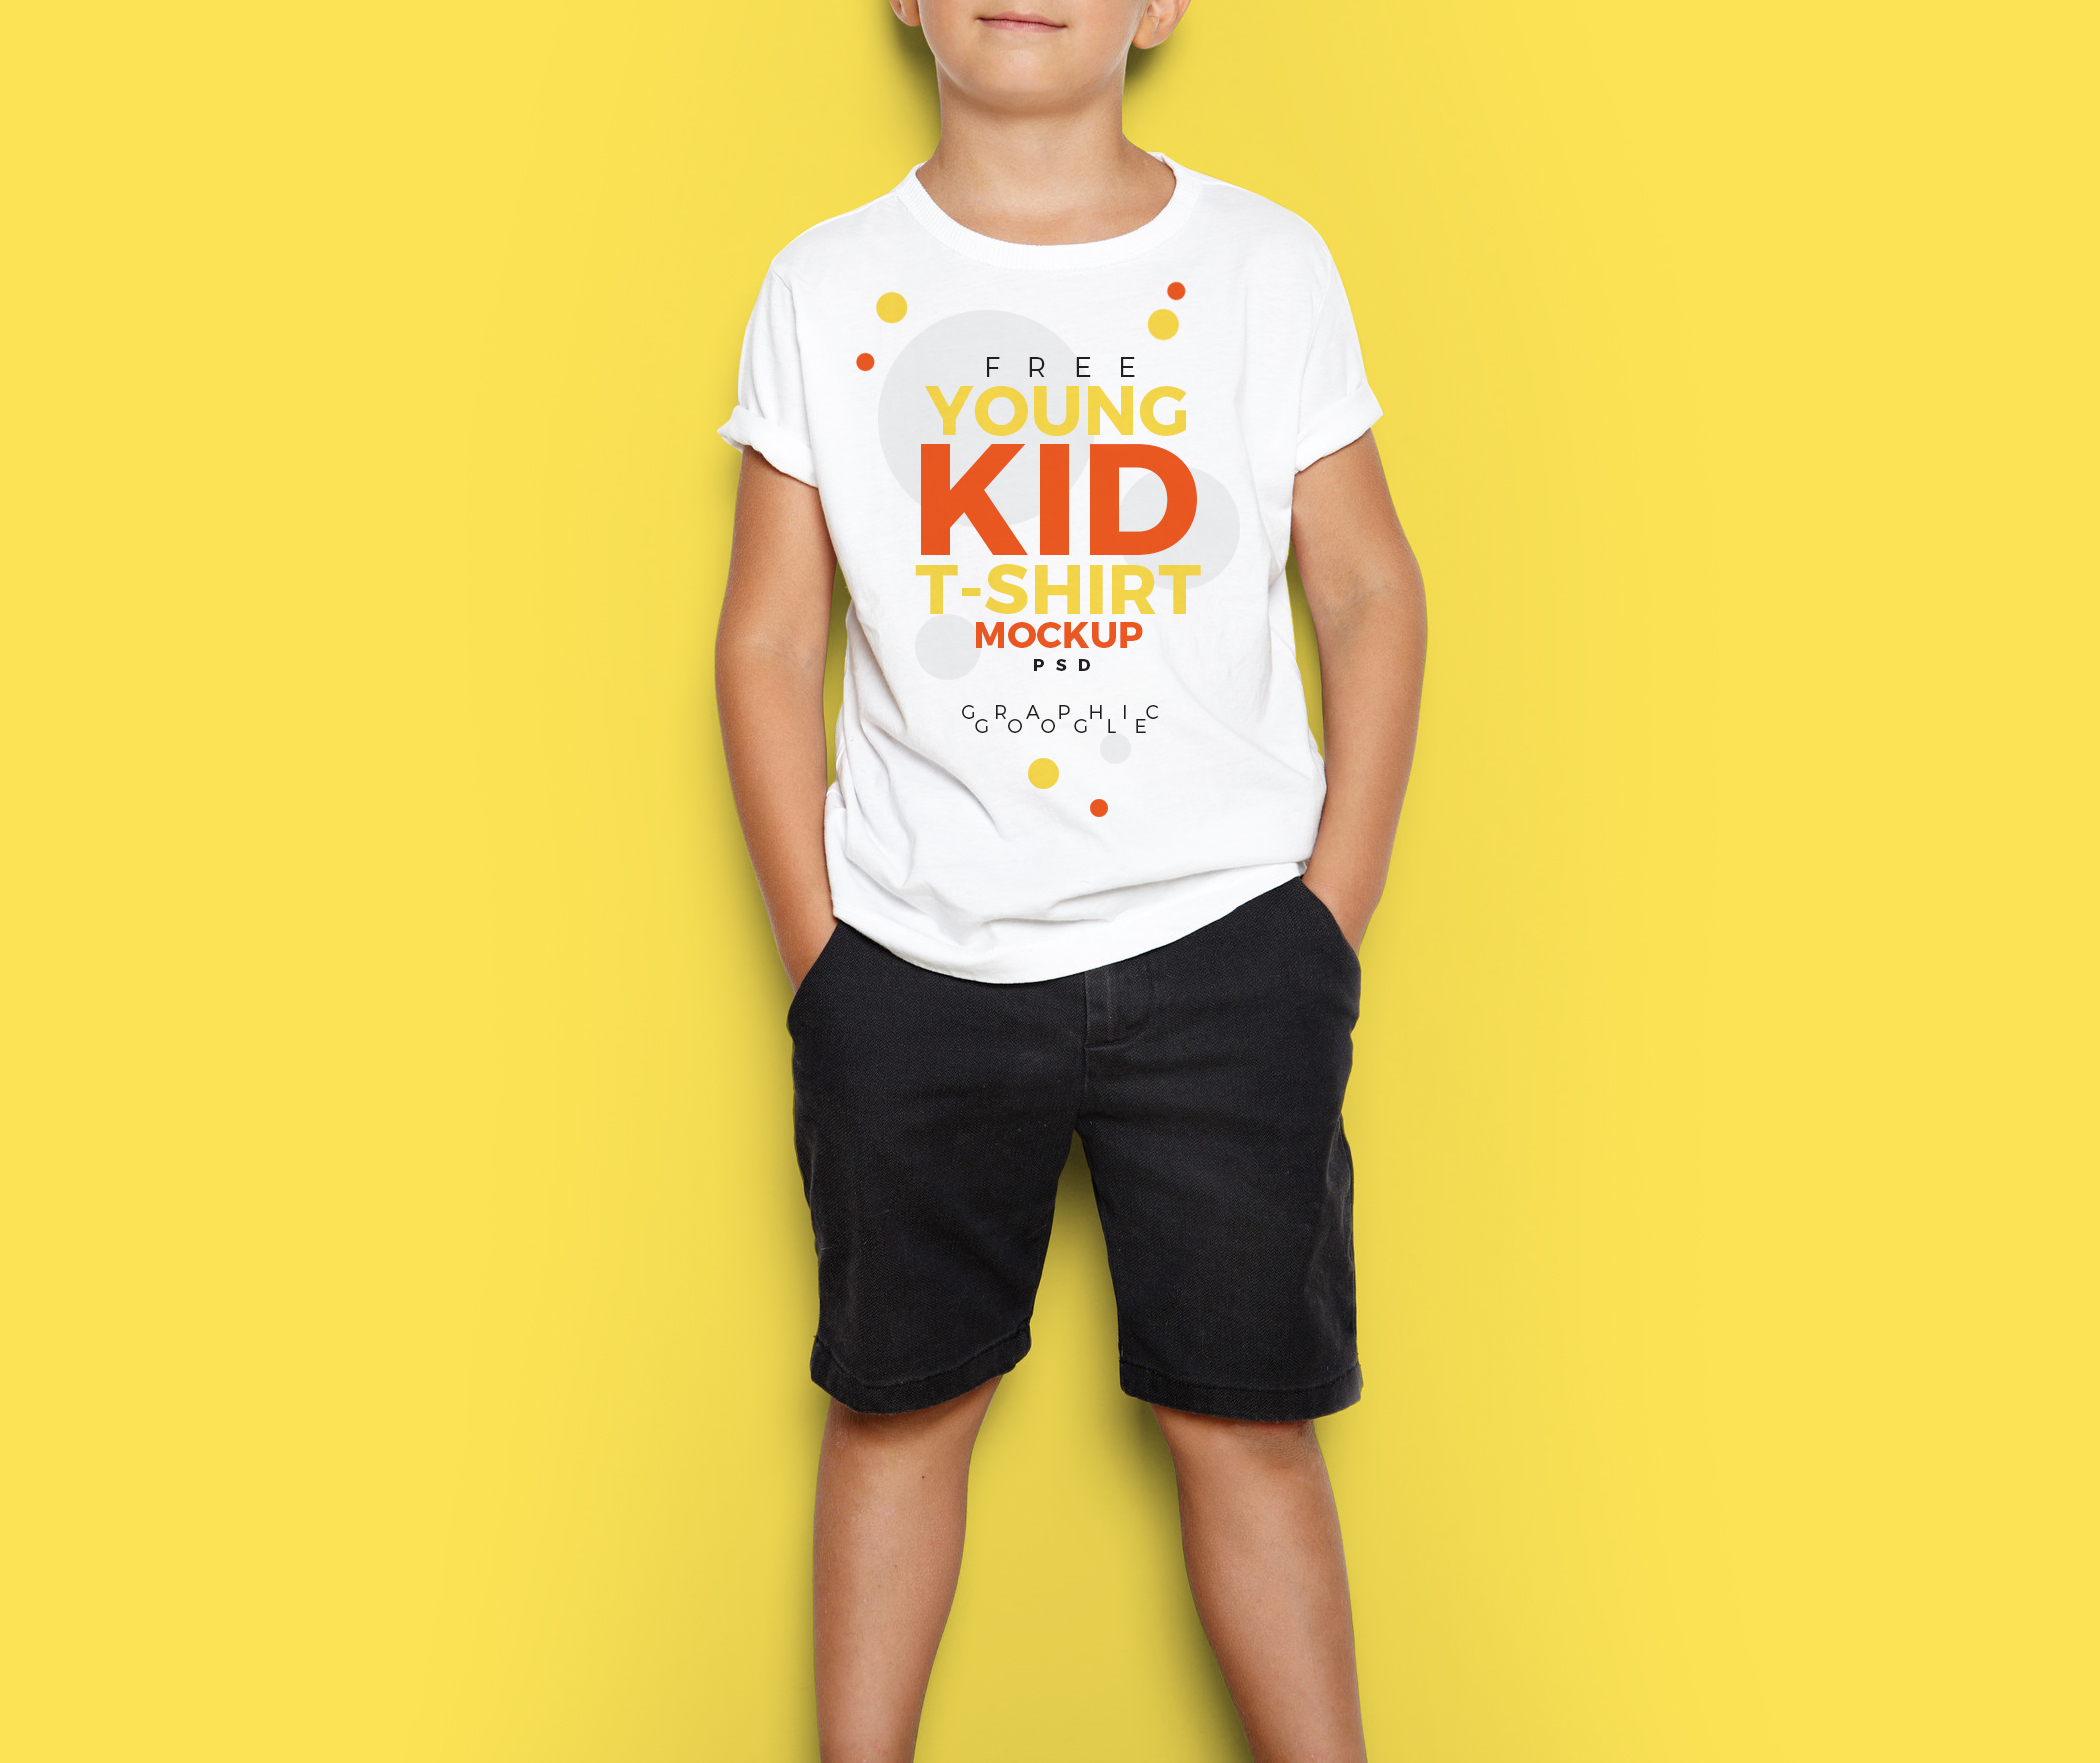 Free-Young-Kid-T-Shirt-MockUp-PSD